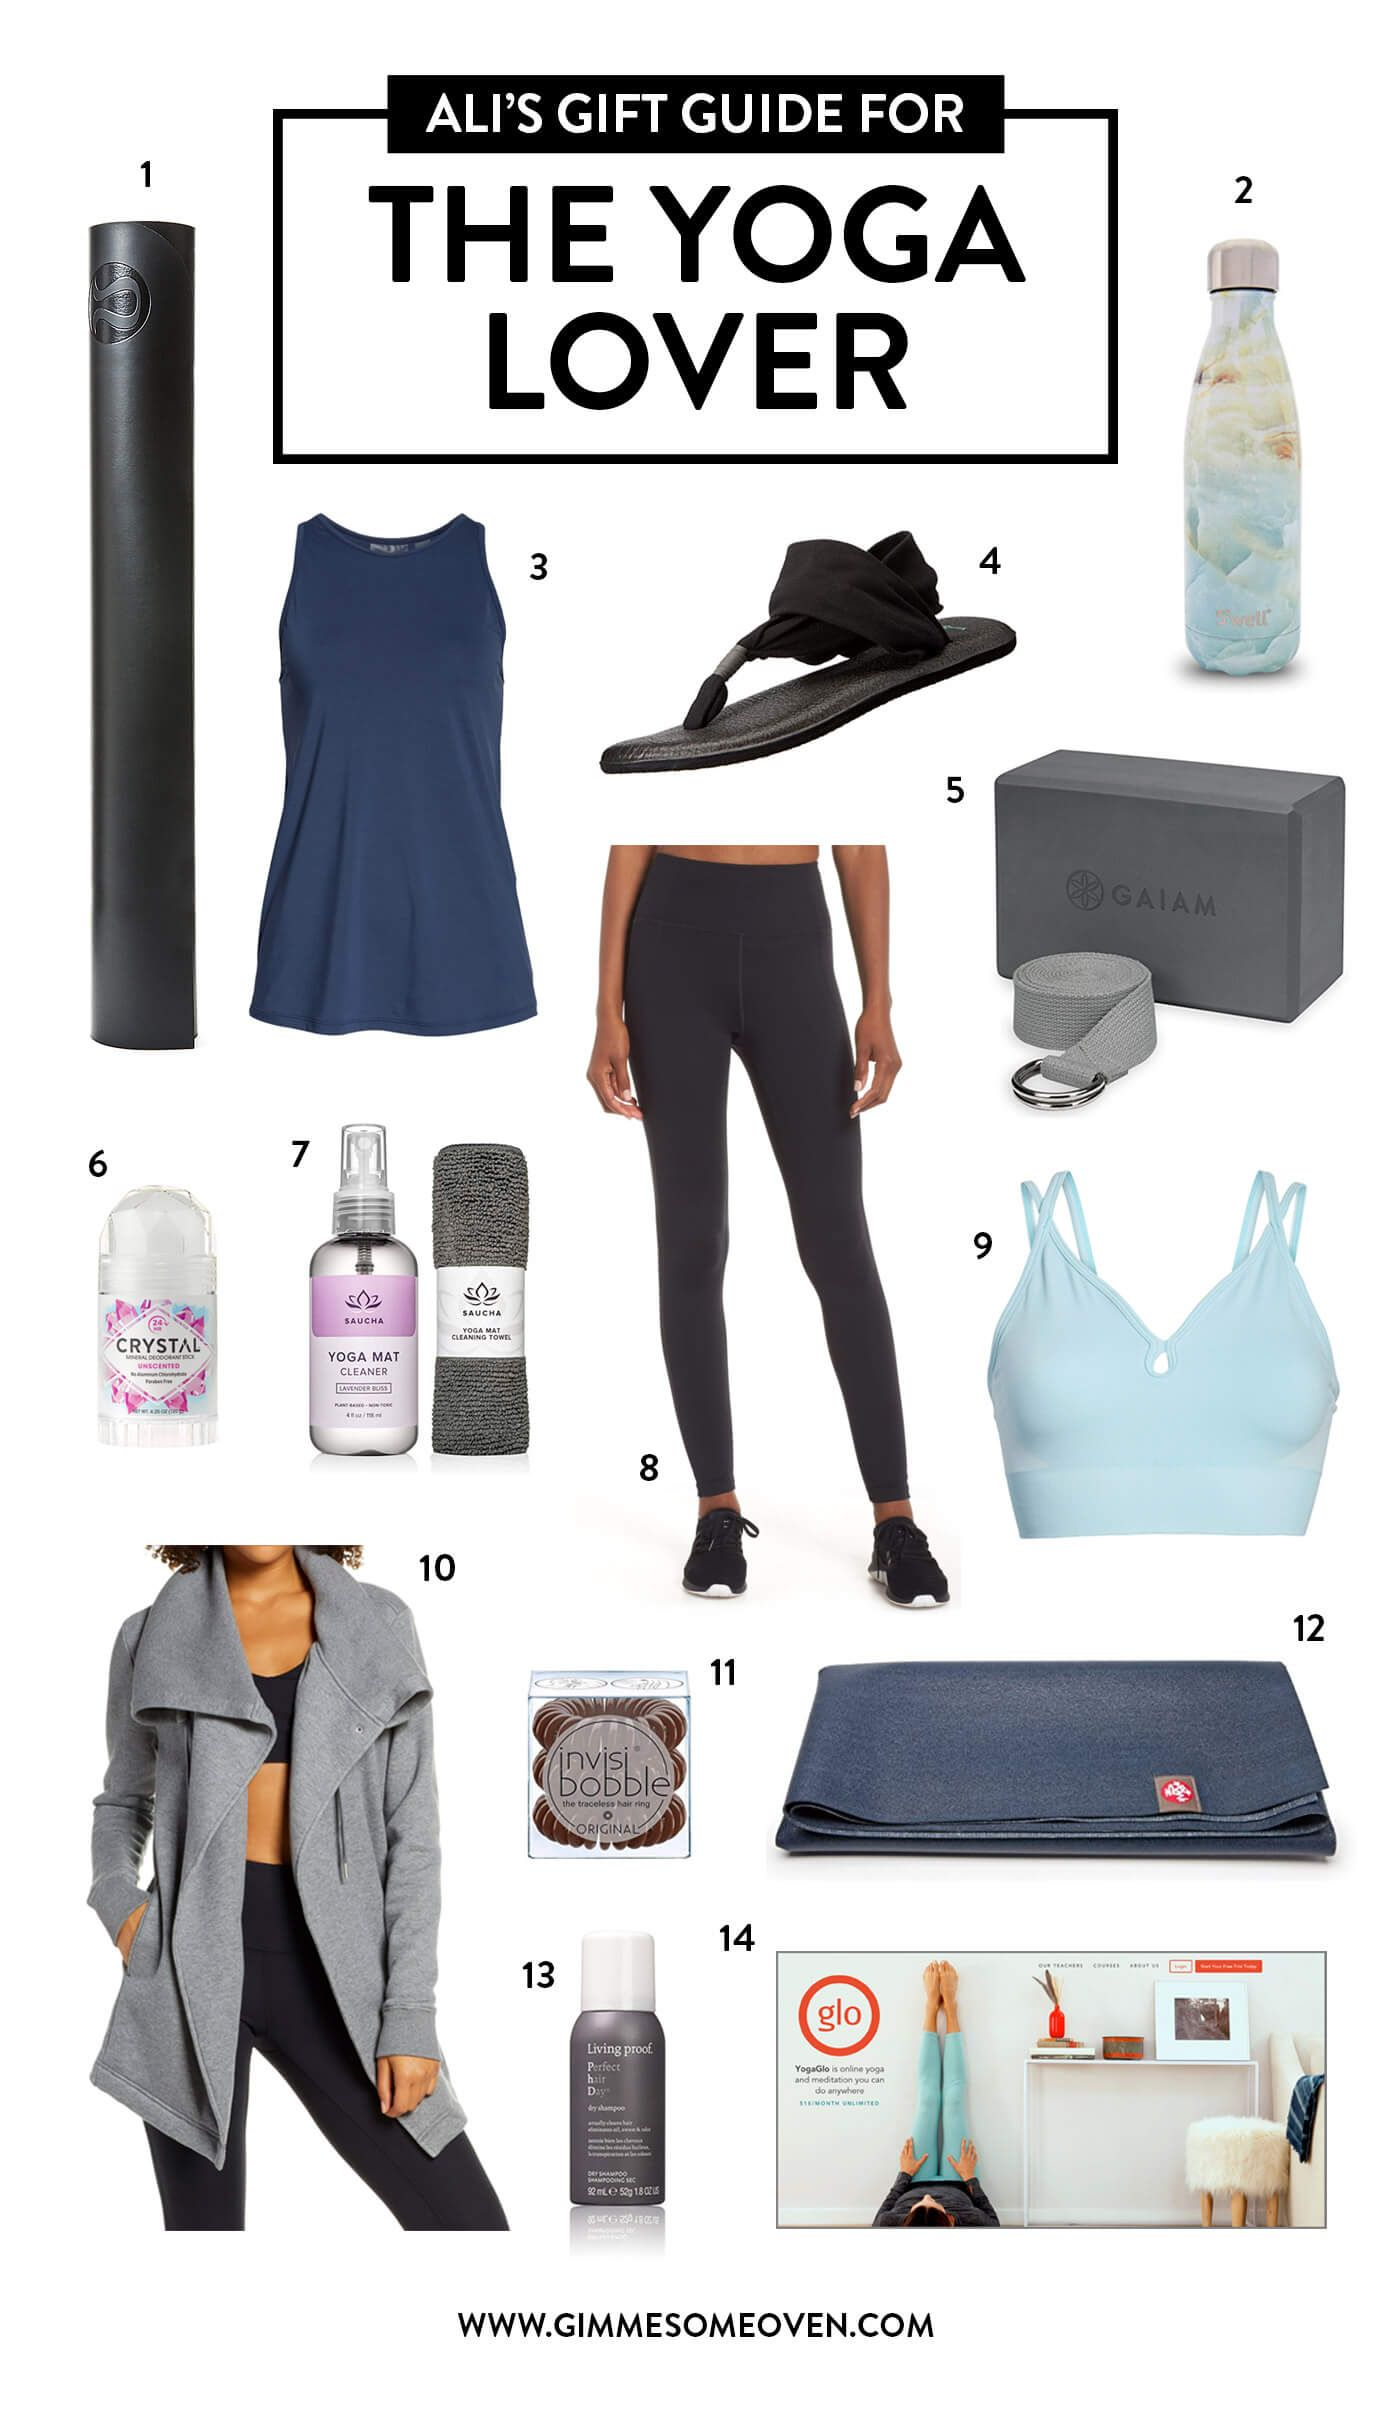 Holiday Gift Guide For THE YOGA LOVER | Fun gift ideas for the yogis in your life, including apparel...